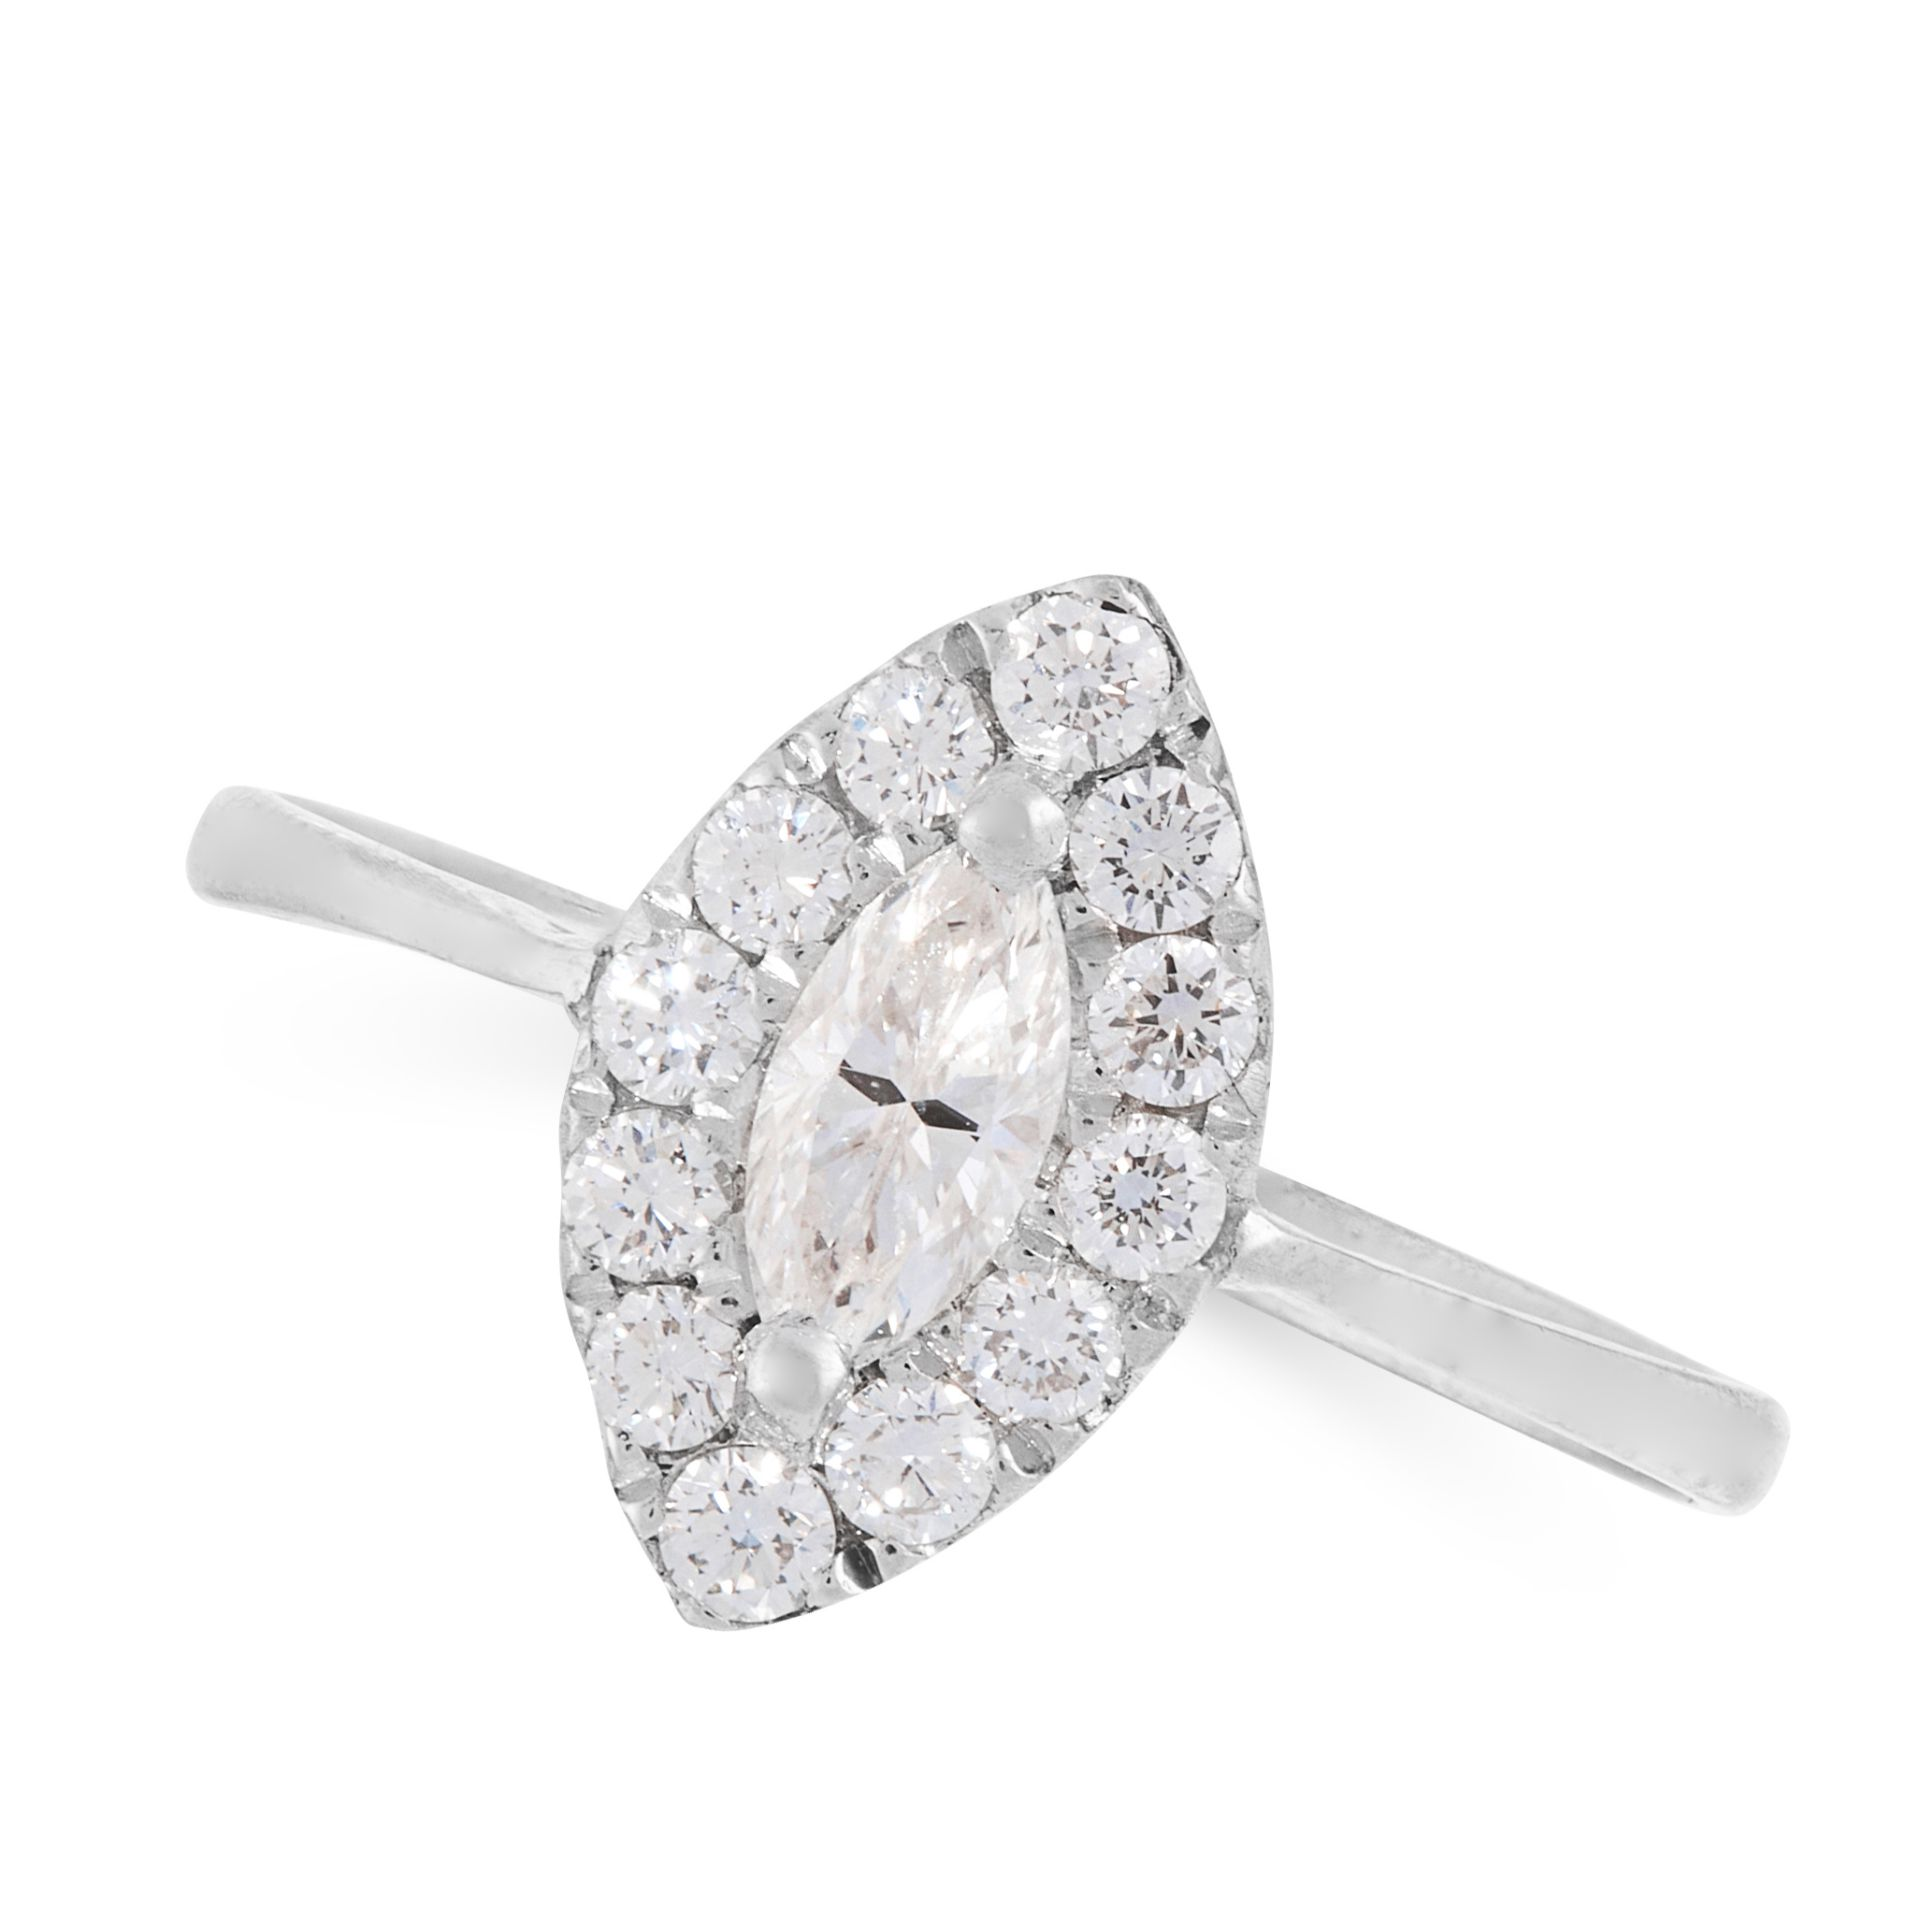 A DIAMOND DRESS RING in 18ct white gold, set with a marquise cut diamond within a border of round